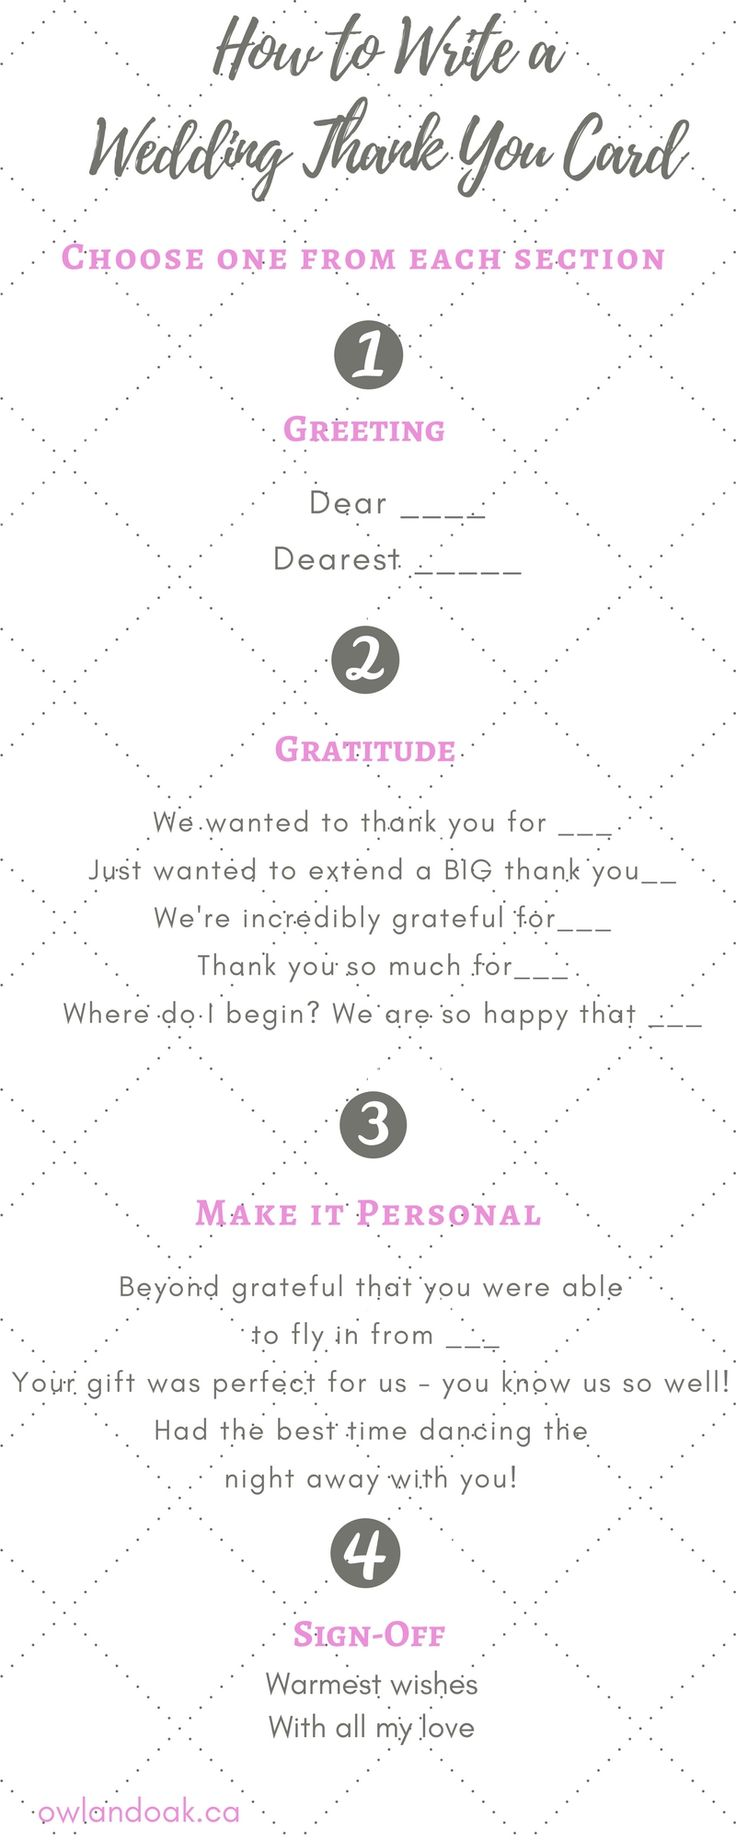 how to write a wedding thank you Writing your wedding thank you speech shouldn't be stressful here are some tips as well as a sample speech.